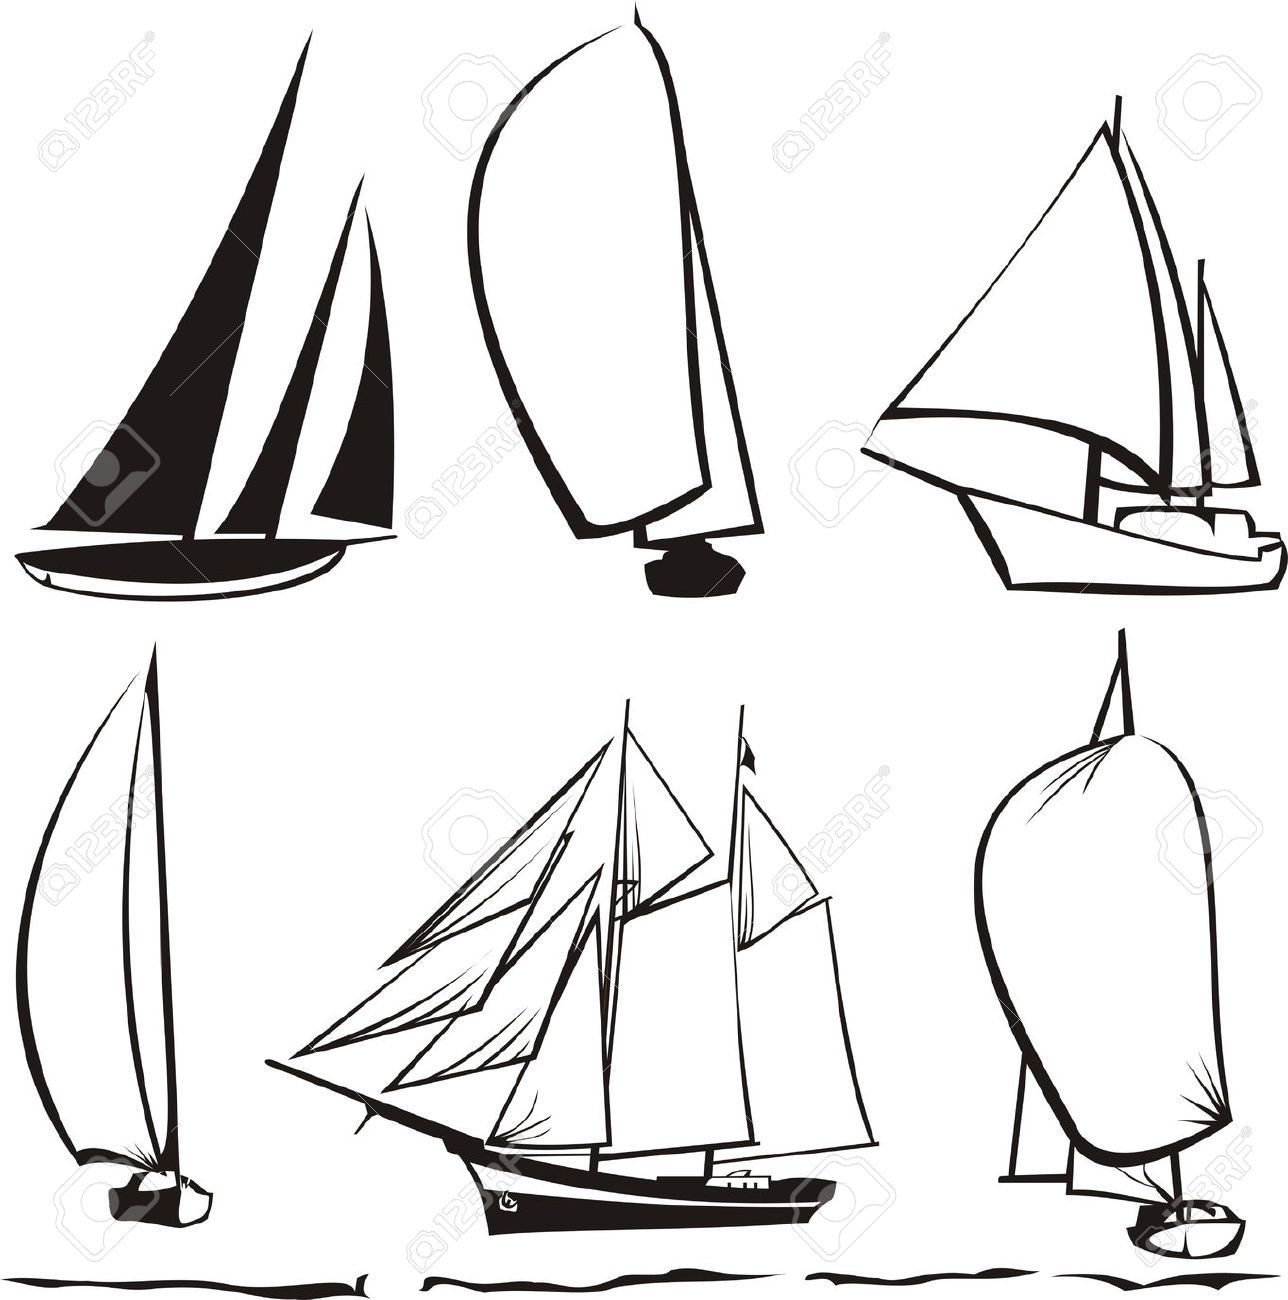 Line Drawing Yacht : Sailboat line drawing google search art